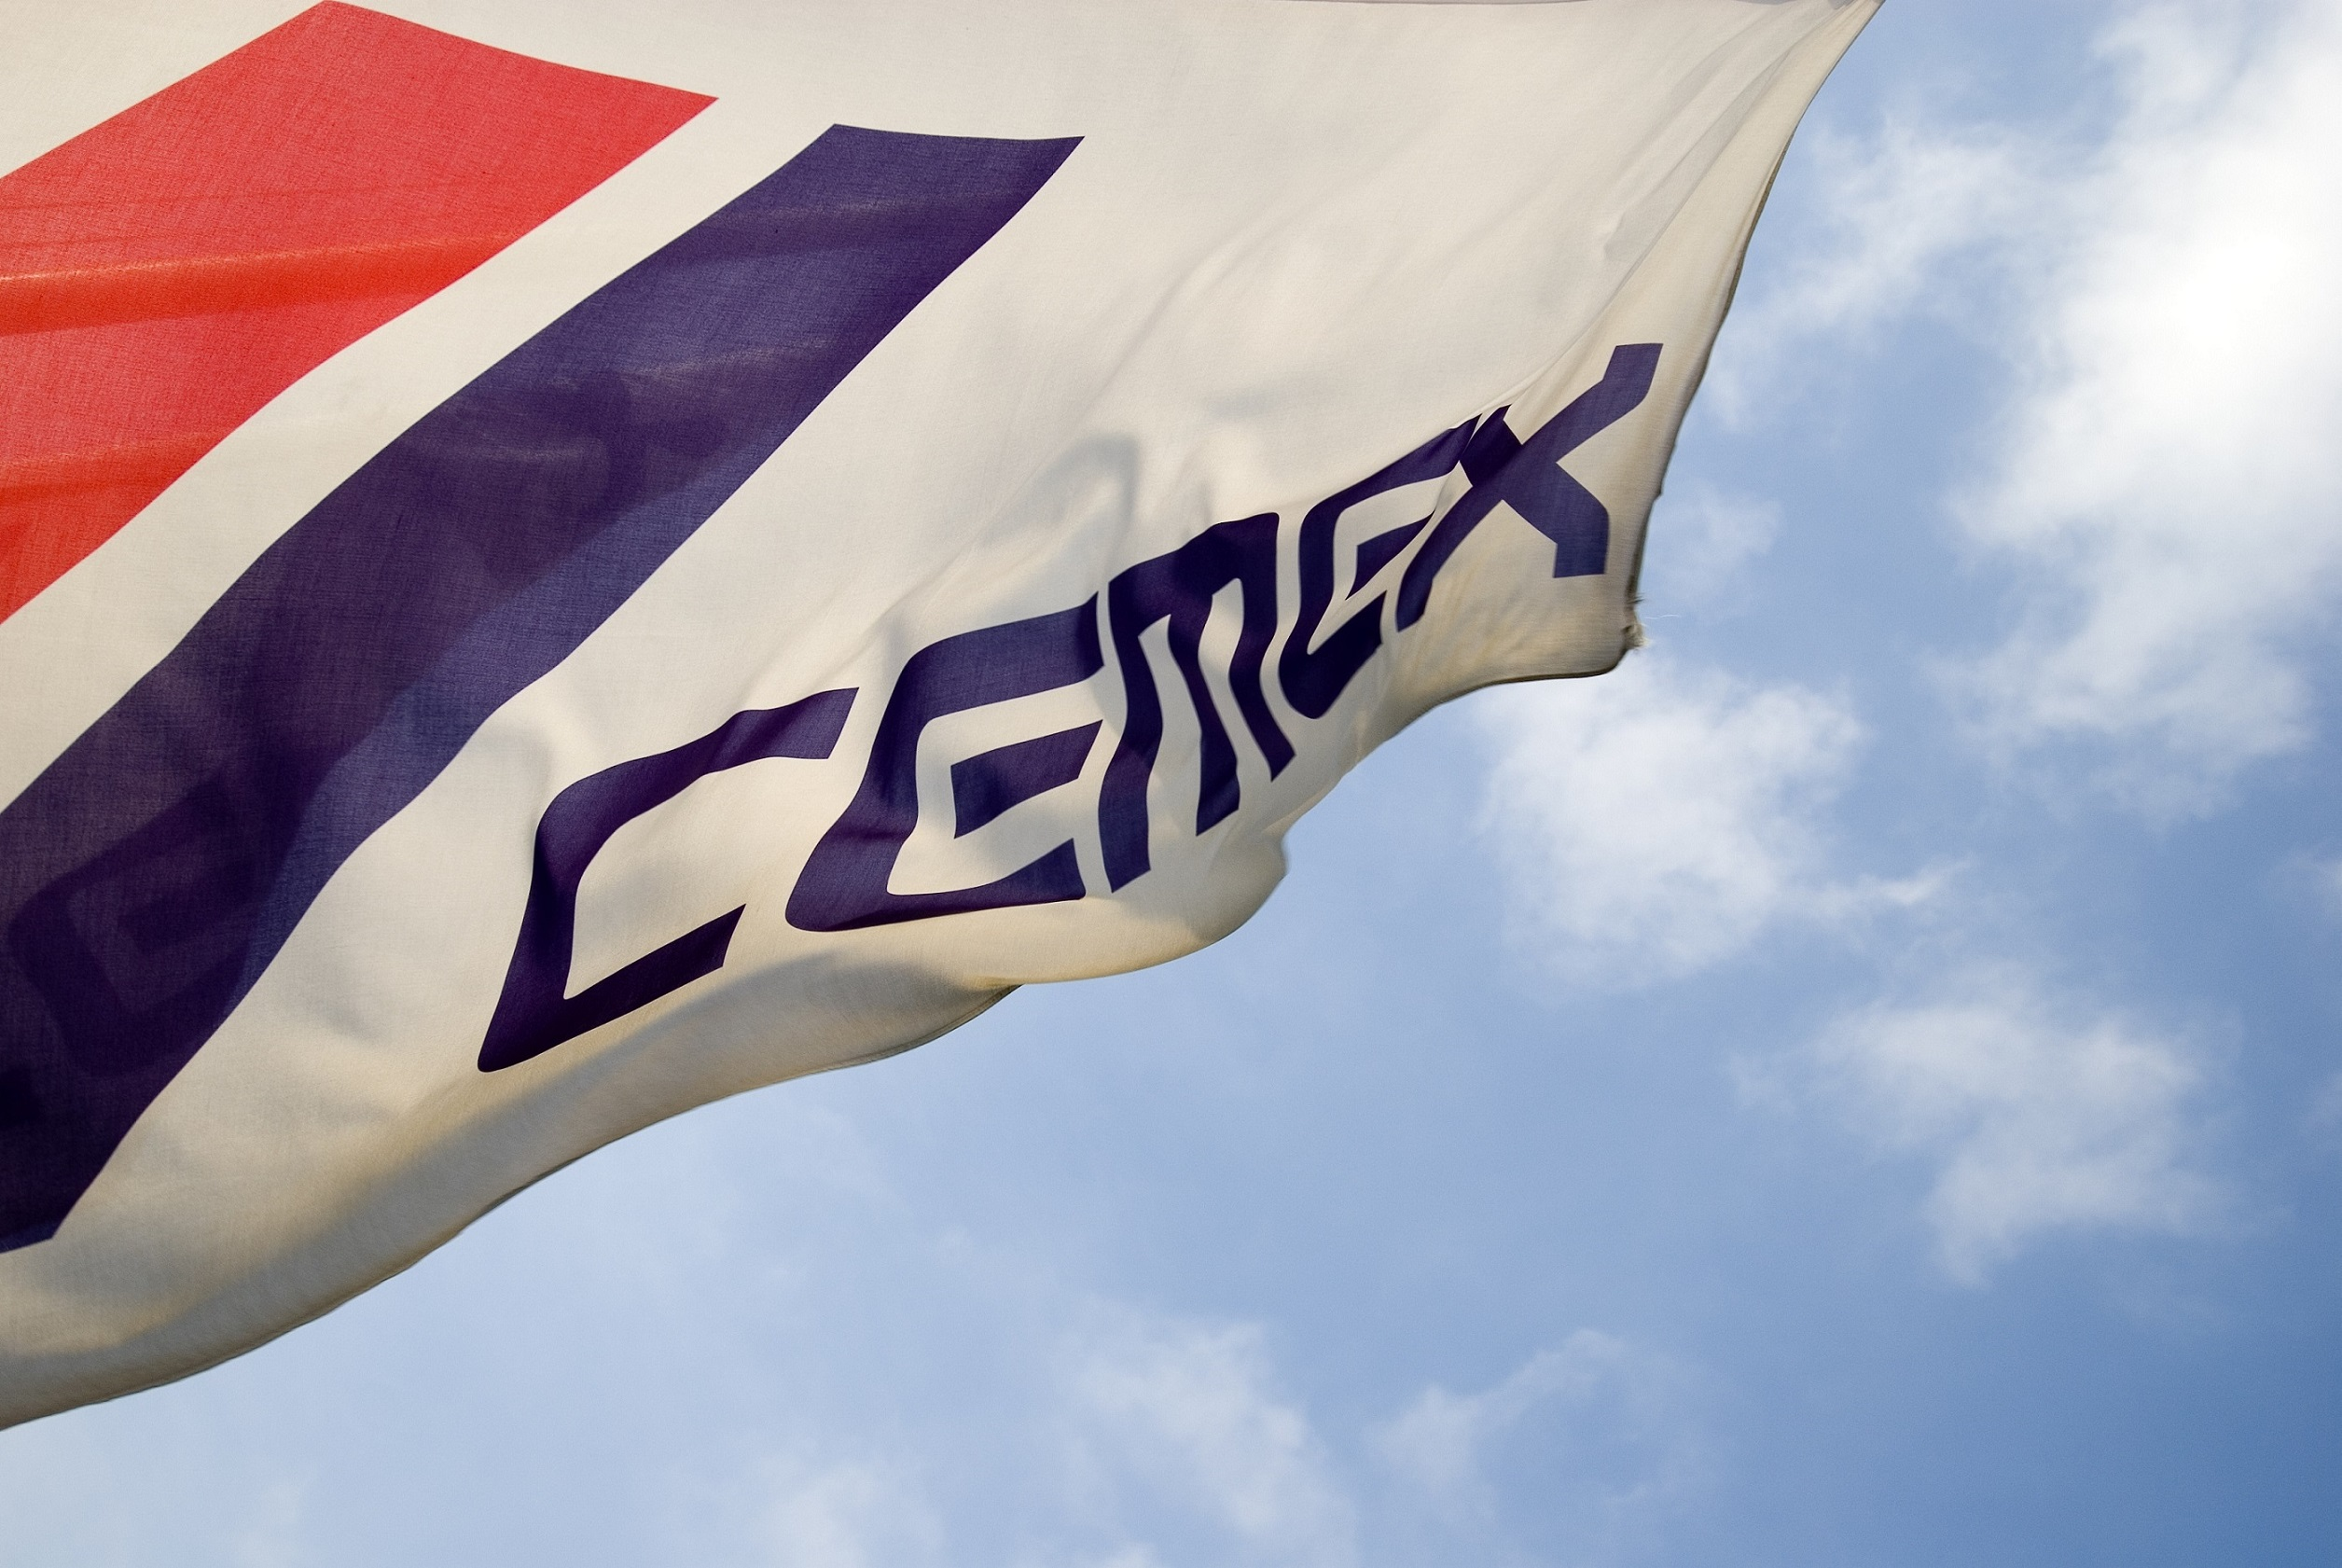 CEMEX is investing US$40m to rapidly extend the hydrogen technology to the rest of its global operations